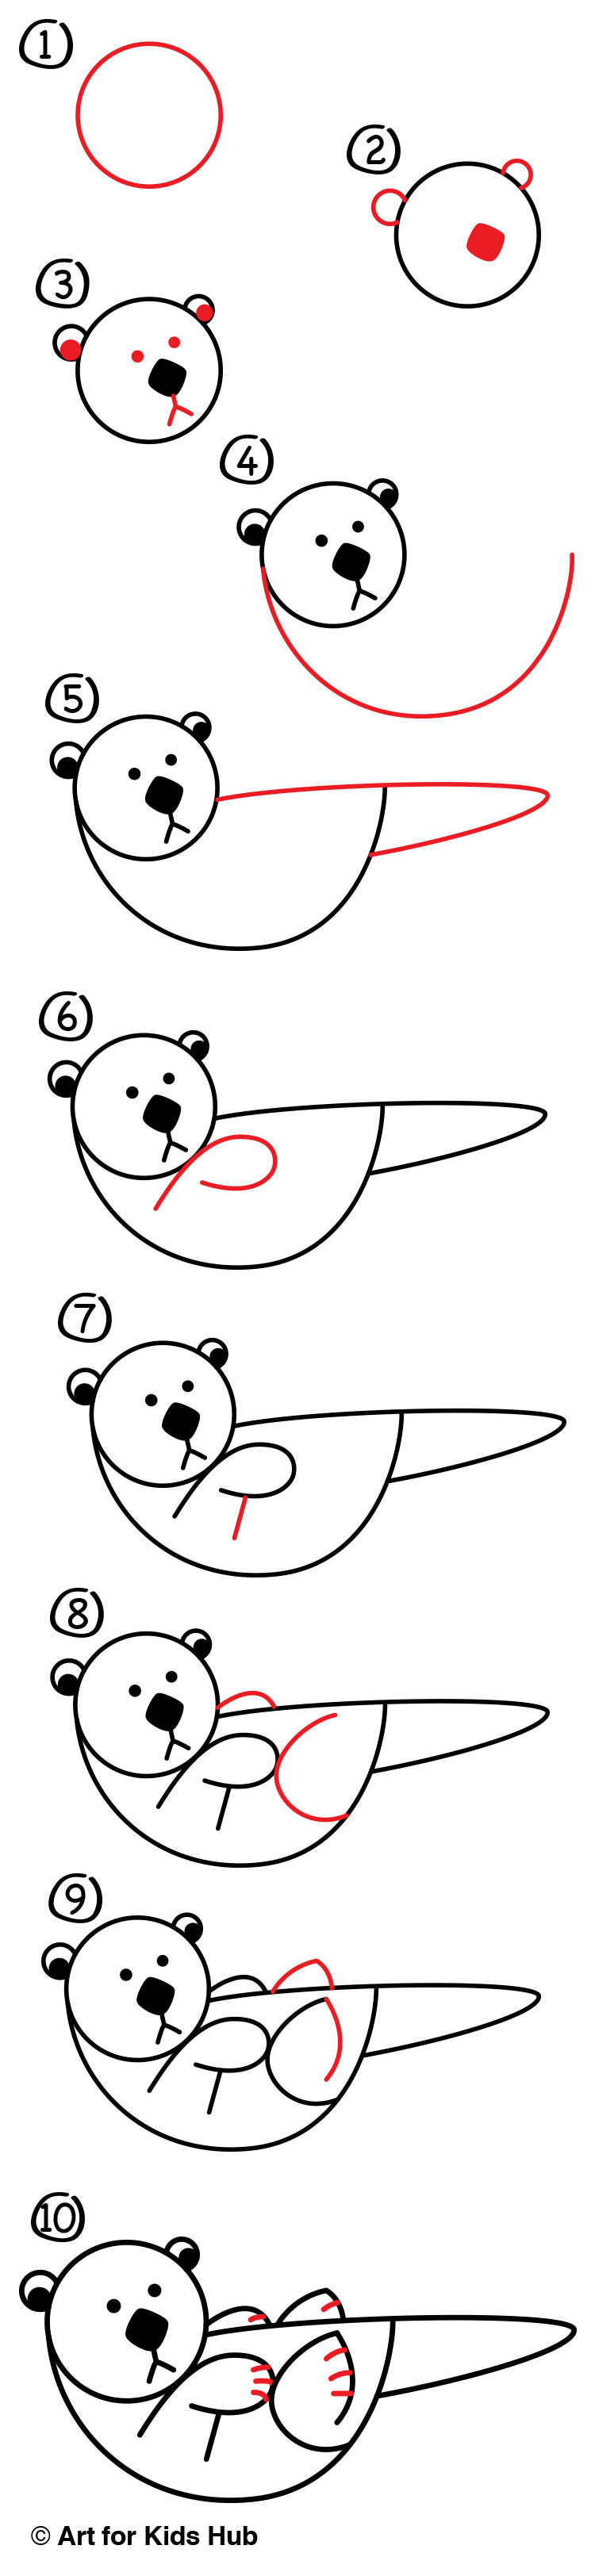 4f2fd8f3f38d1 How To Draw An Otter With Shapes - Art For Kids Hub -